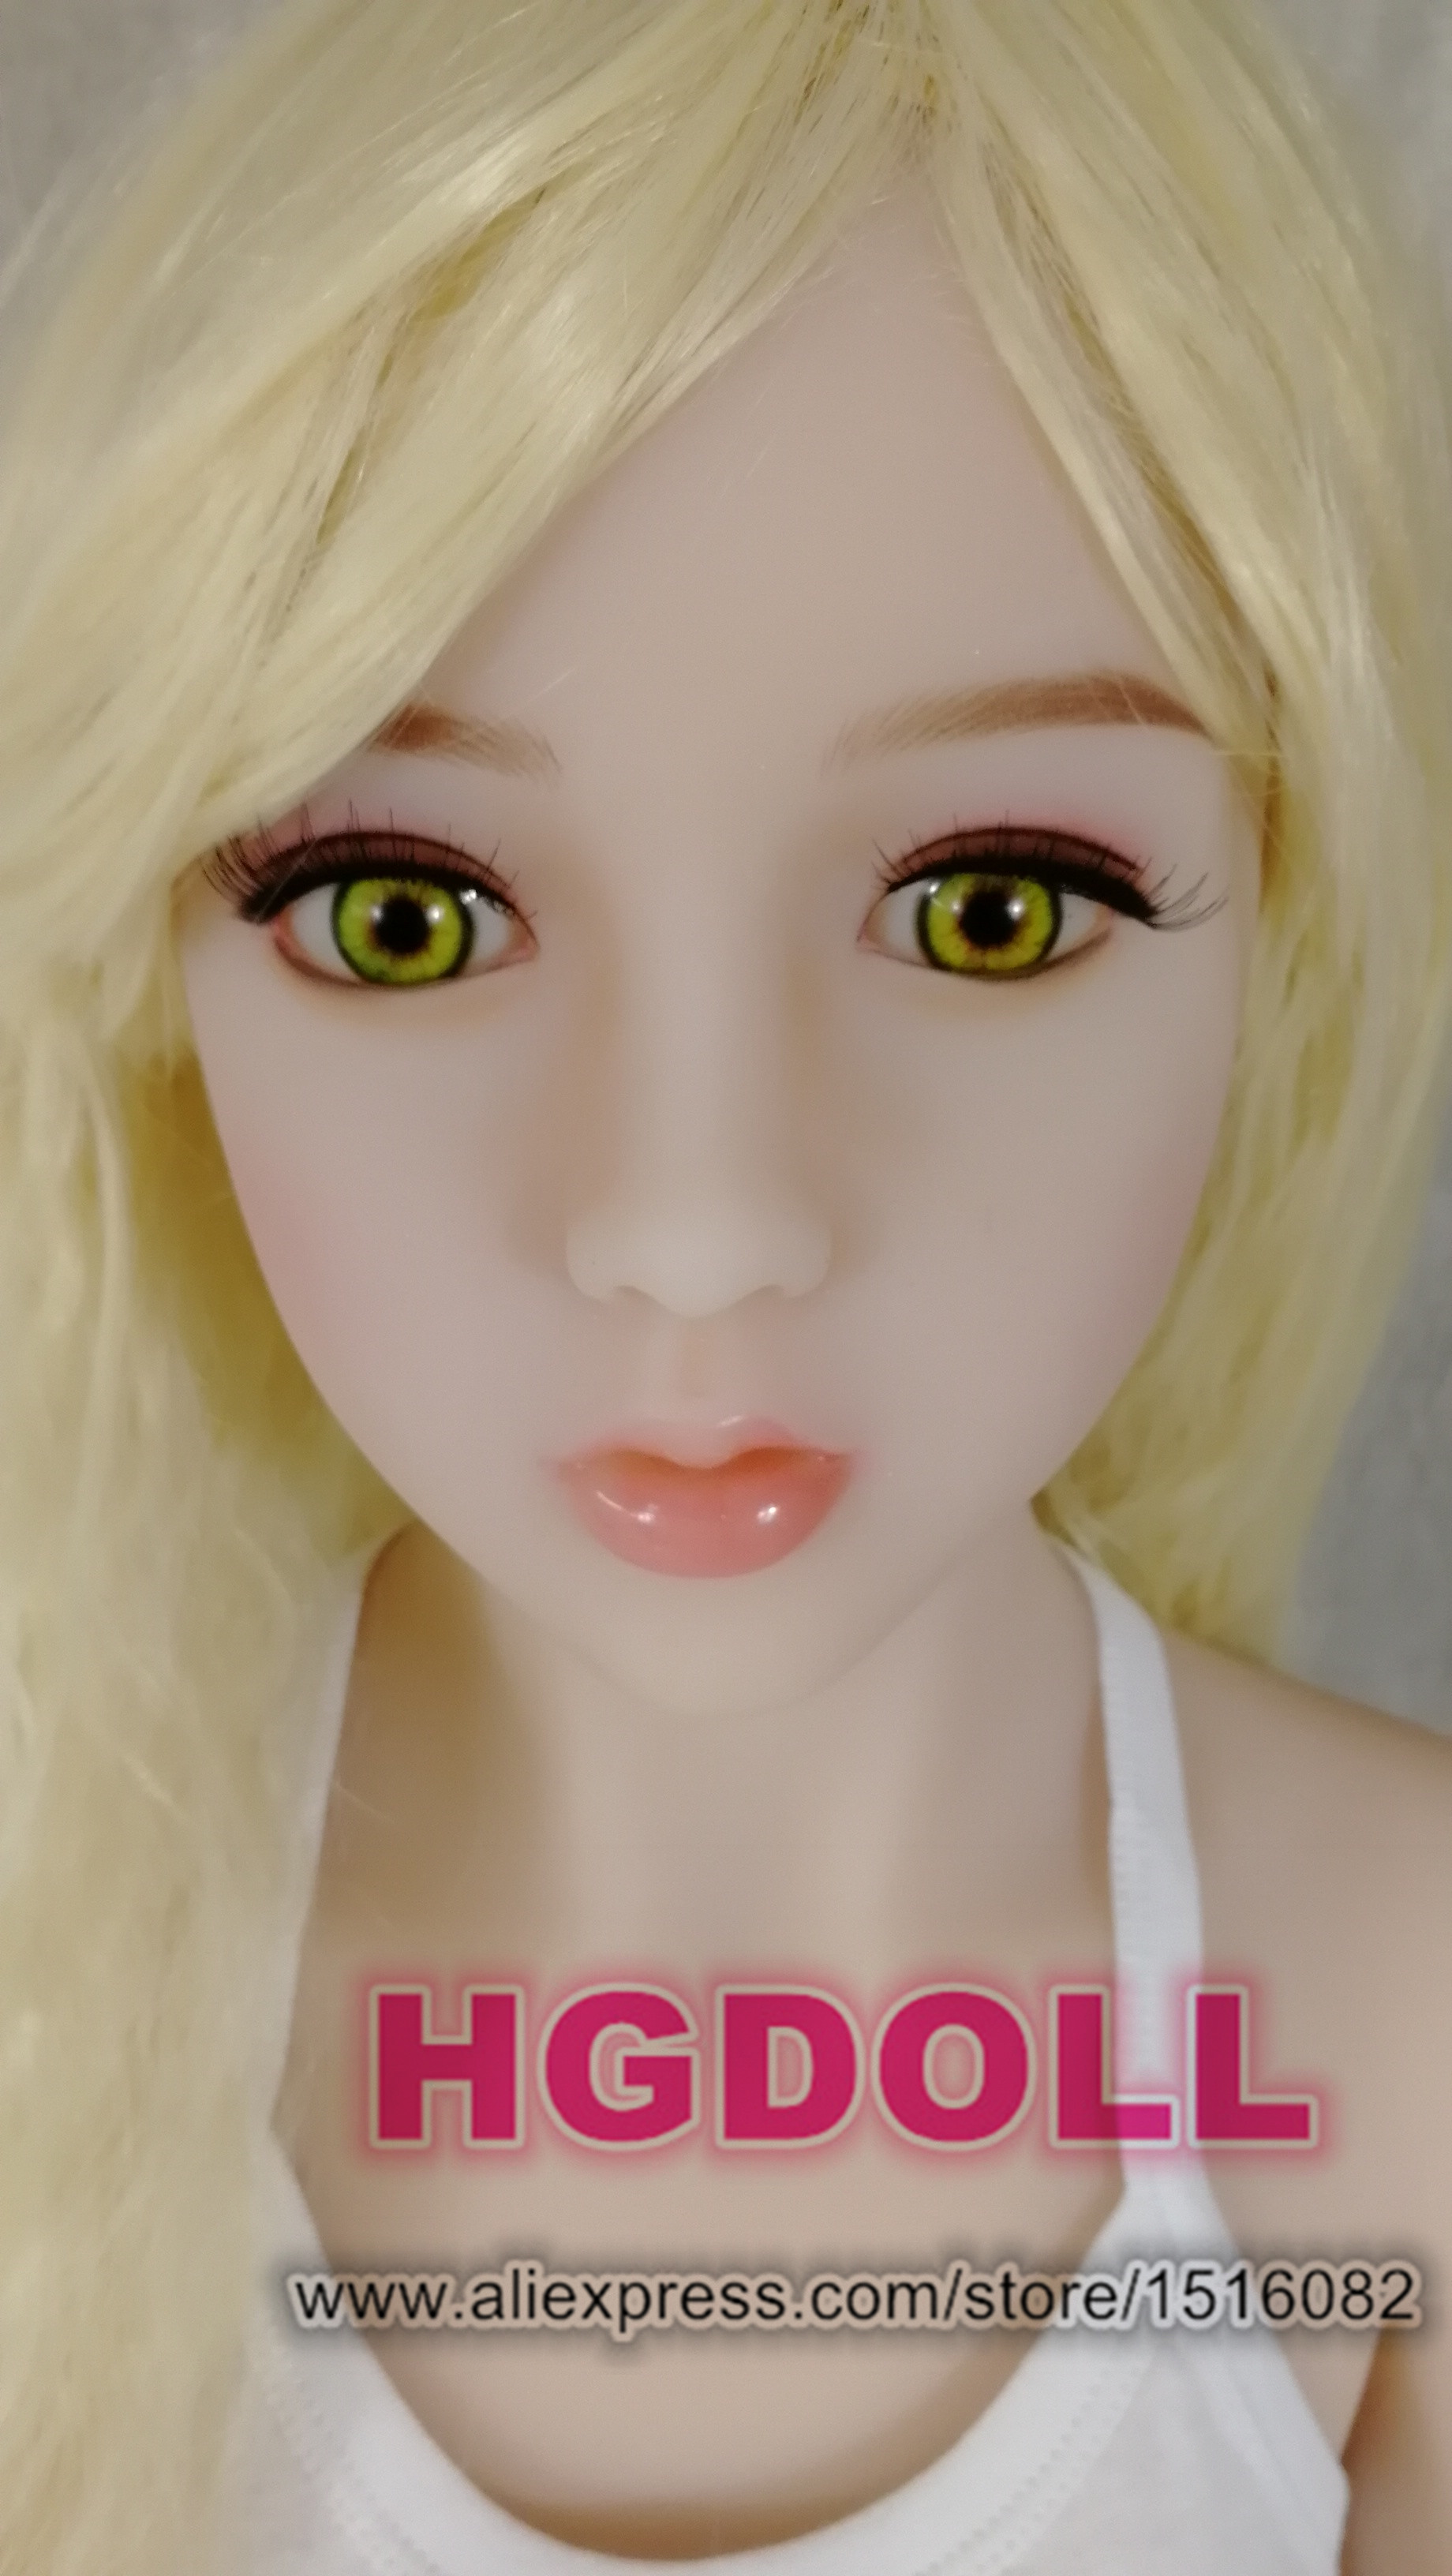 <font><b>128CM</b></font> Sei Dollhouse 168 RealLife size <font><b>Sex</b></font> <font><b>Doll</b></font> Realistic Skin Love <font><b>Doll</b></font> image